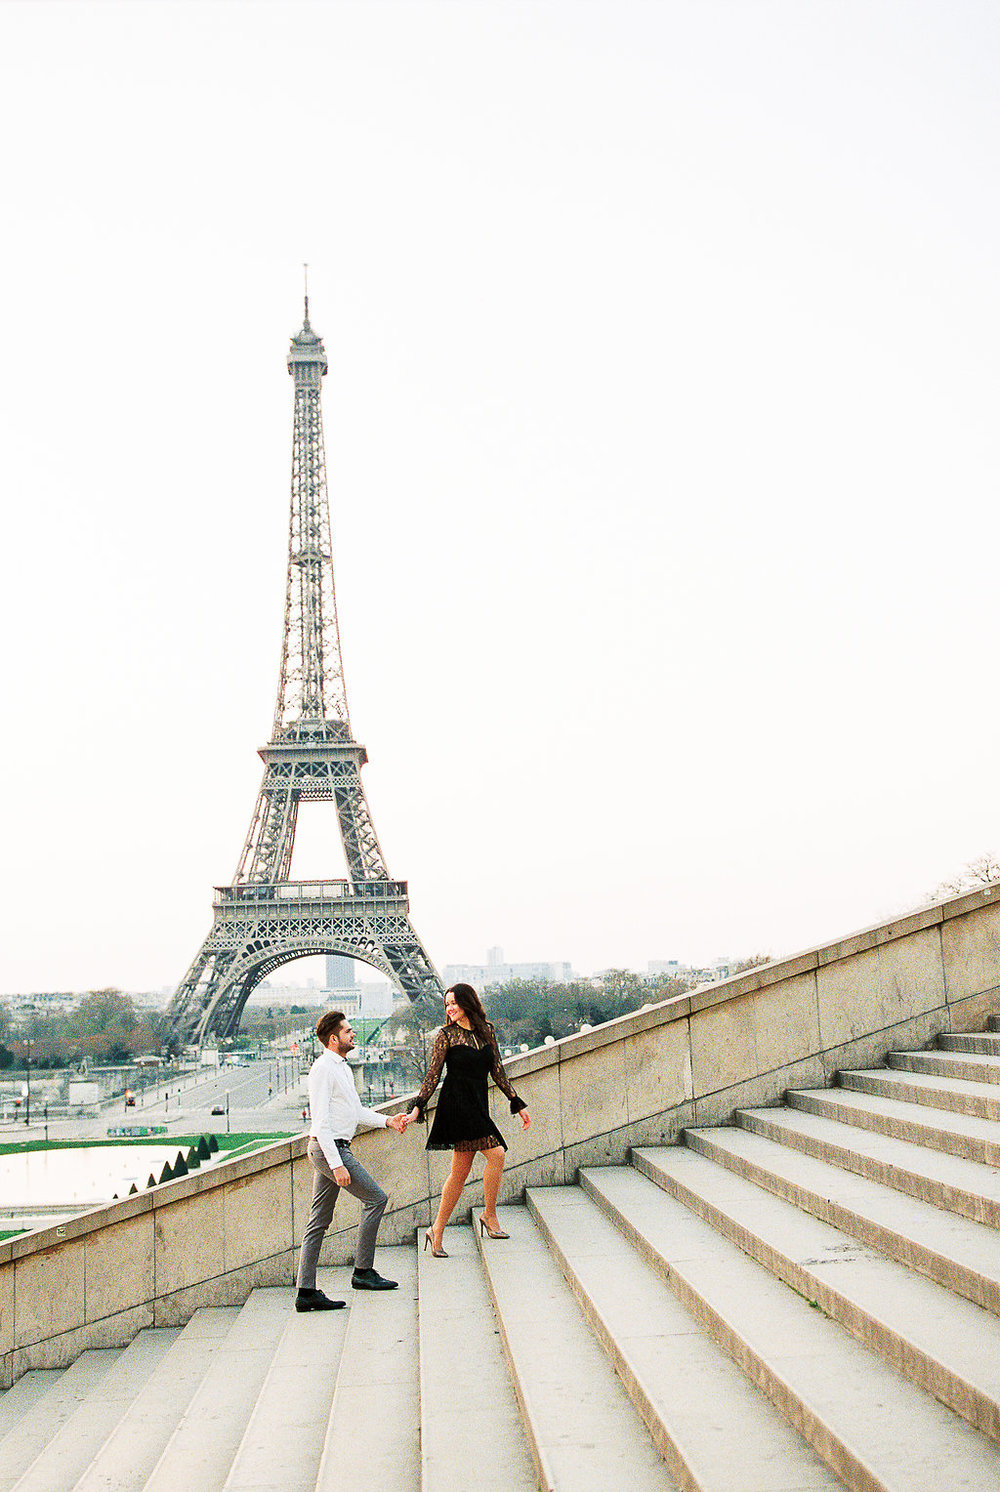 Germany fine art film wedding photographer | Kibogo Photography | Paris engagement session19.JPG